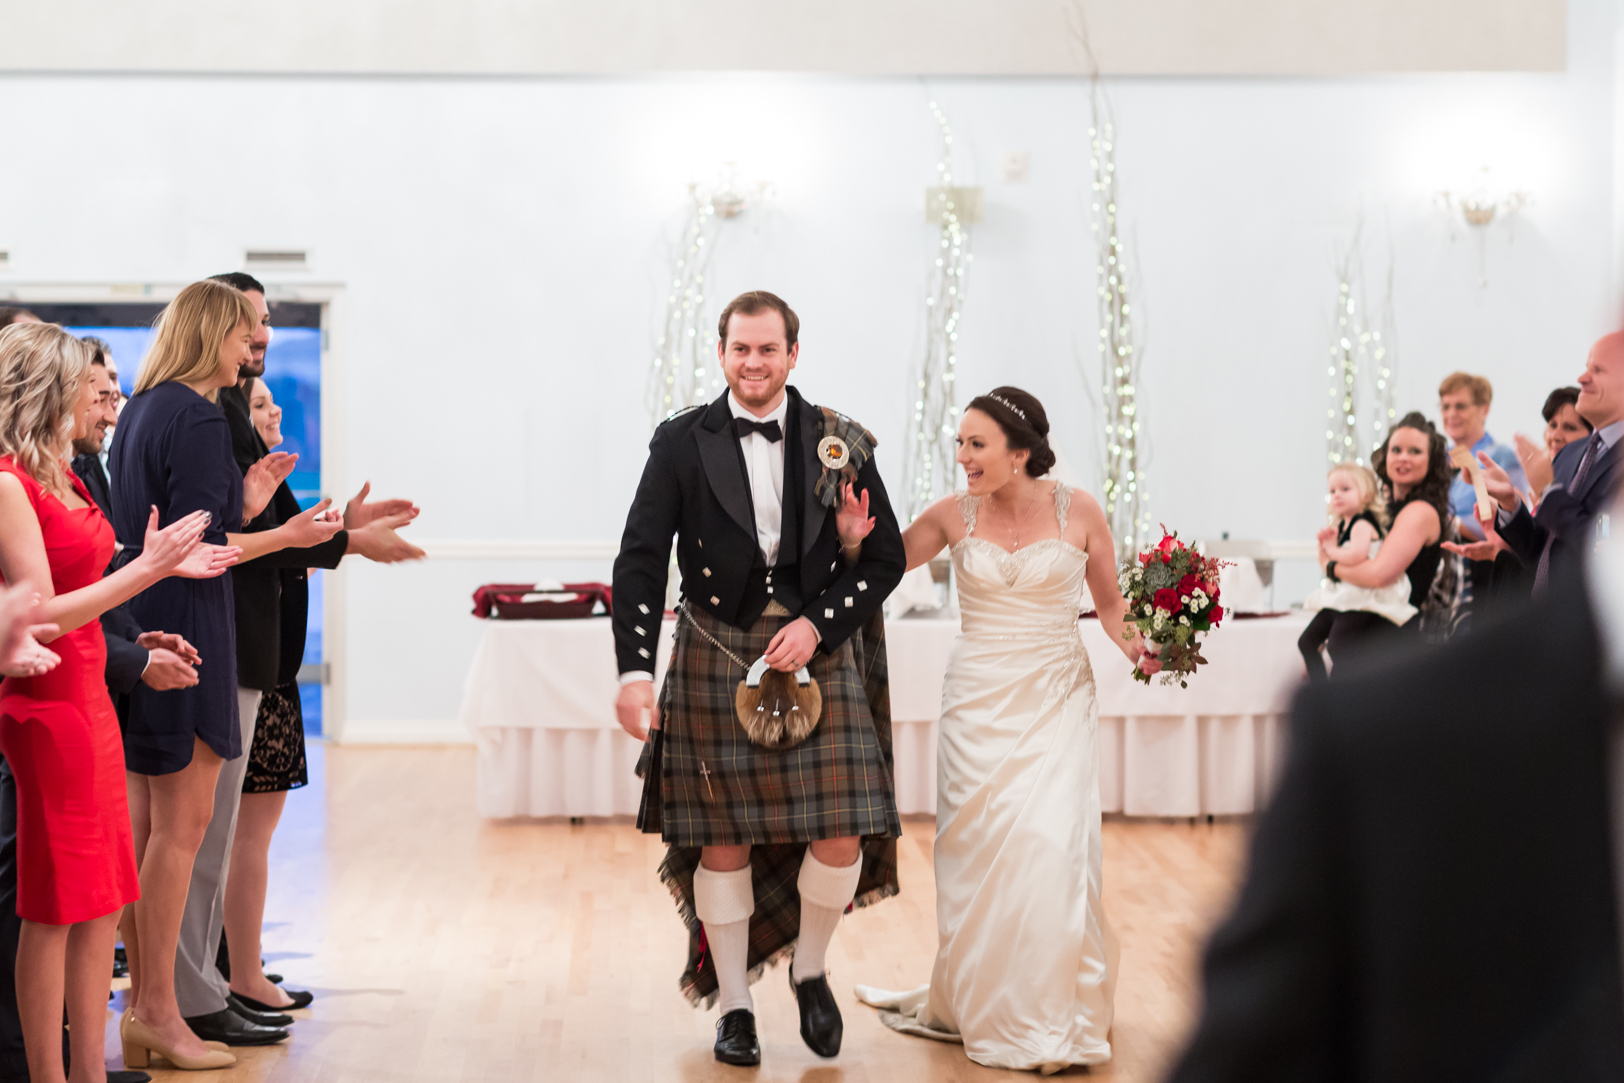 scottish wedding procession